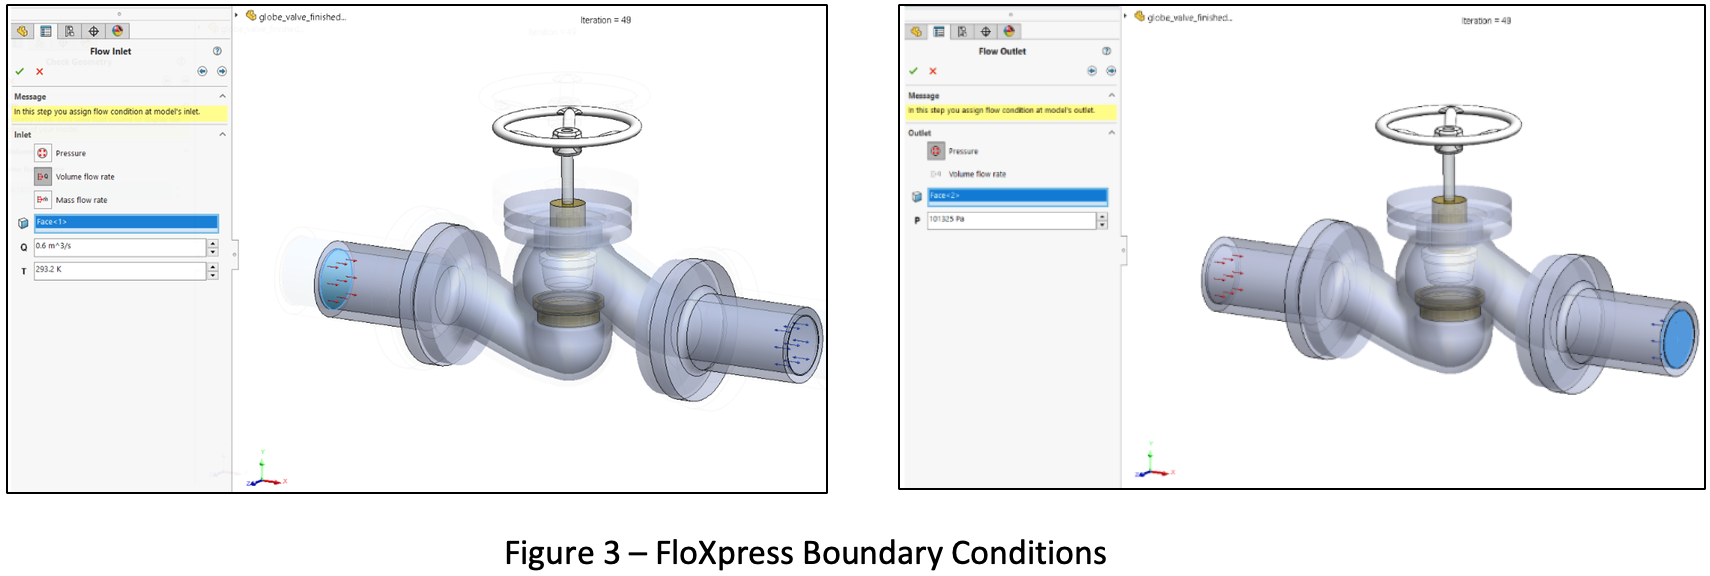 FloXpress Boundary Conditions